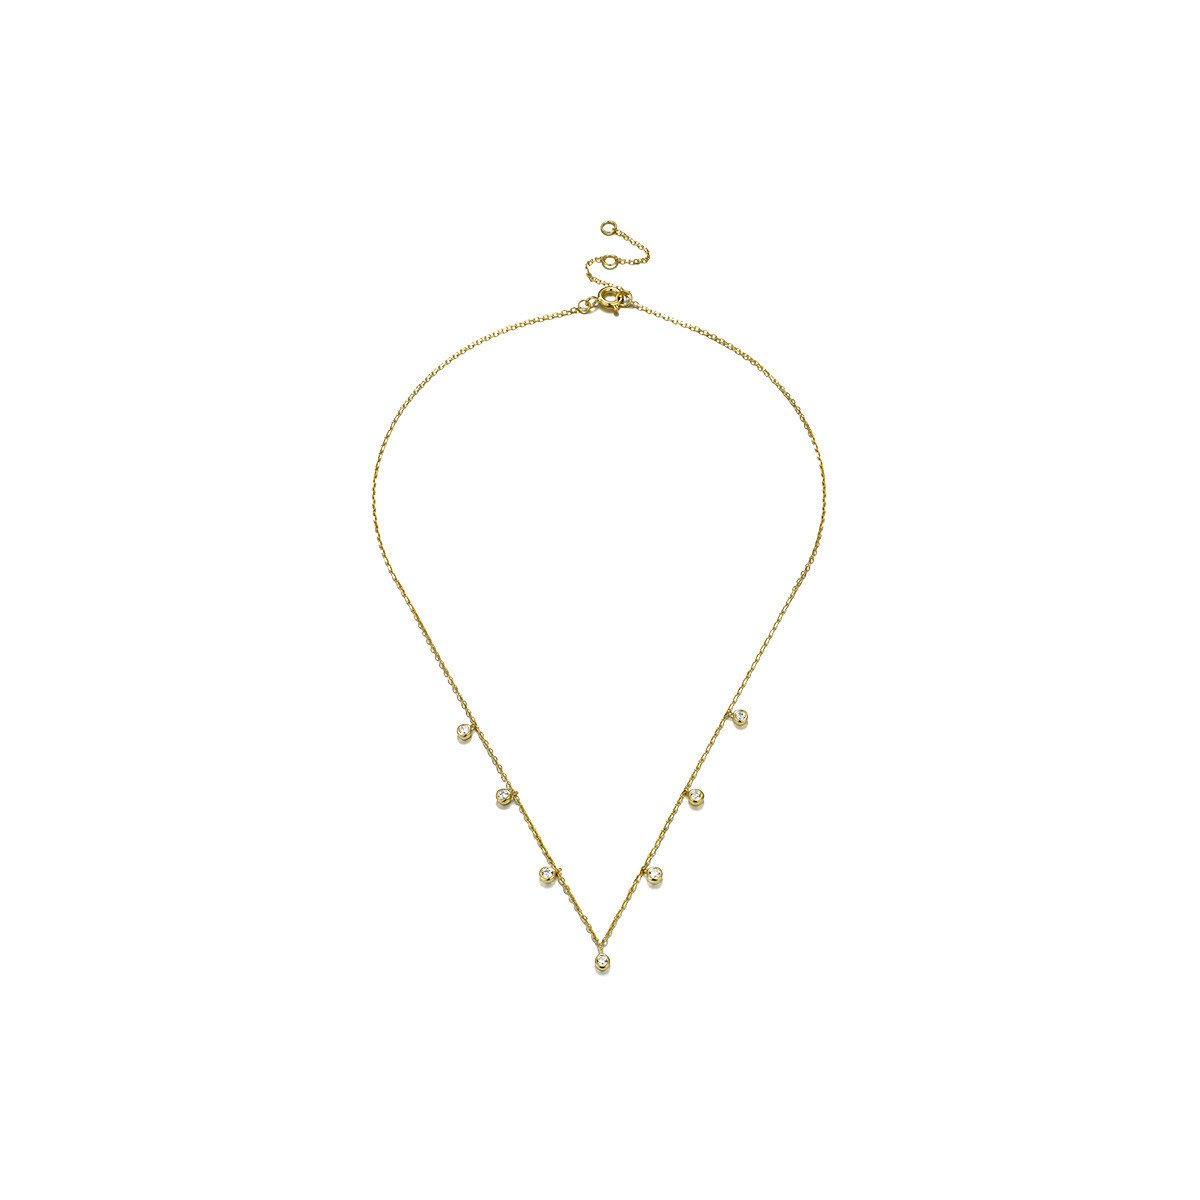 products collections necklace droplet sale jewellery gold